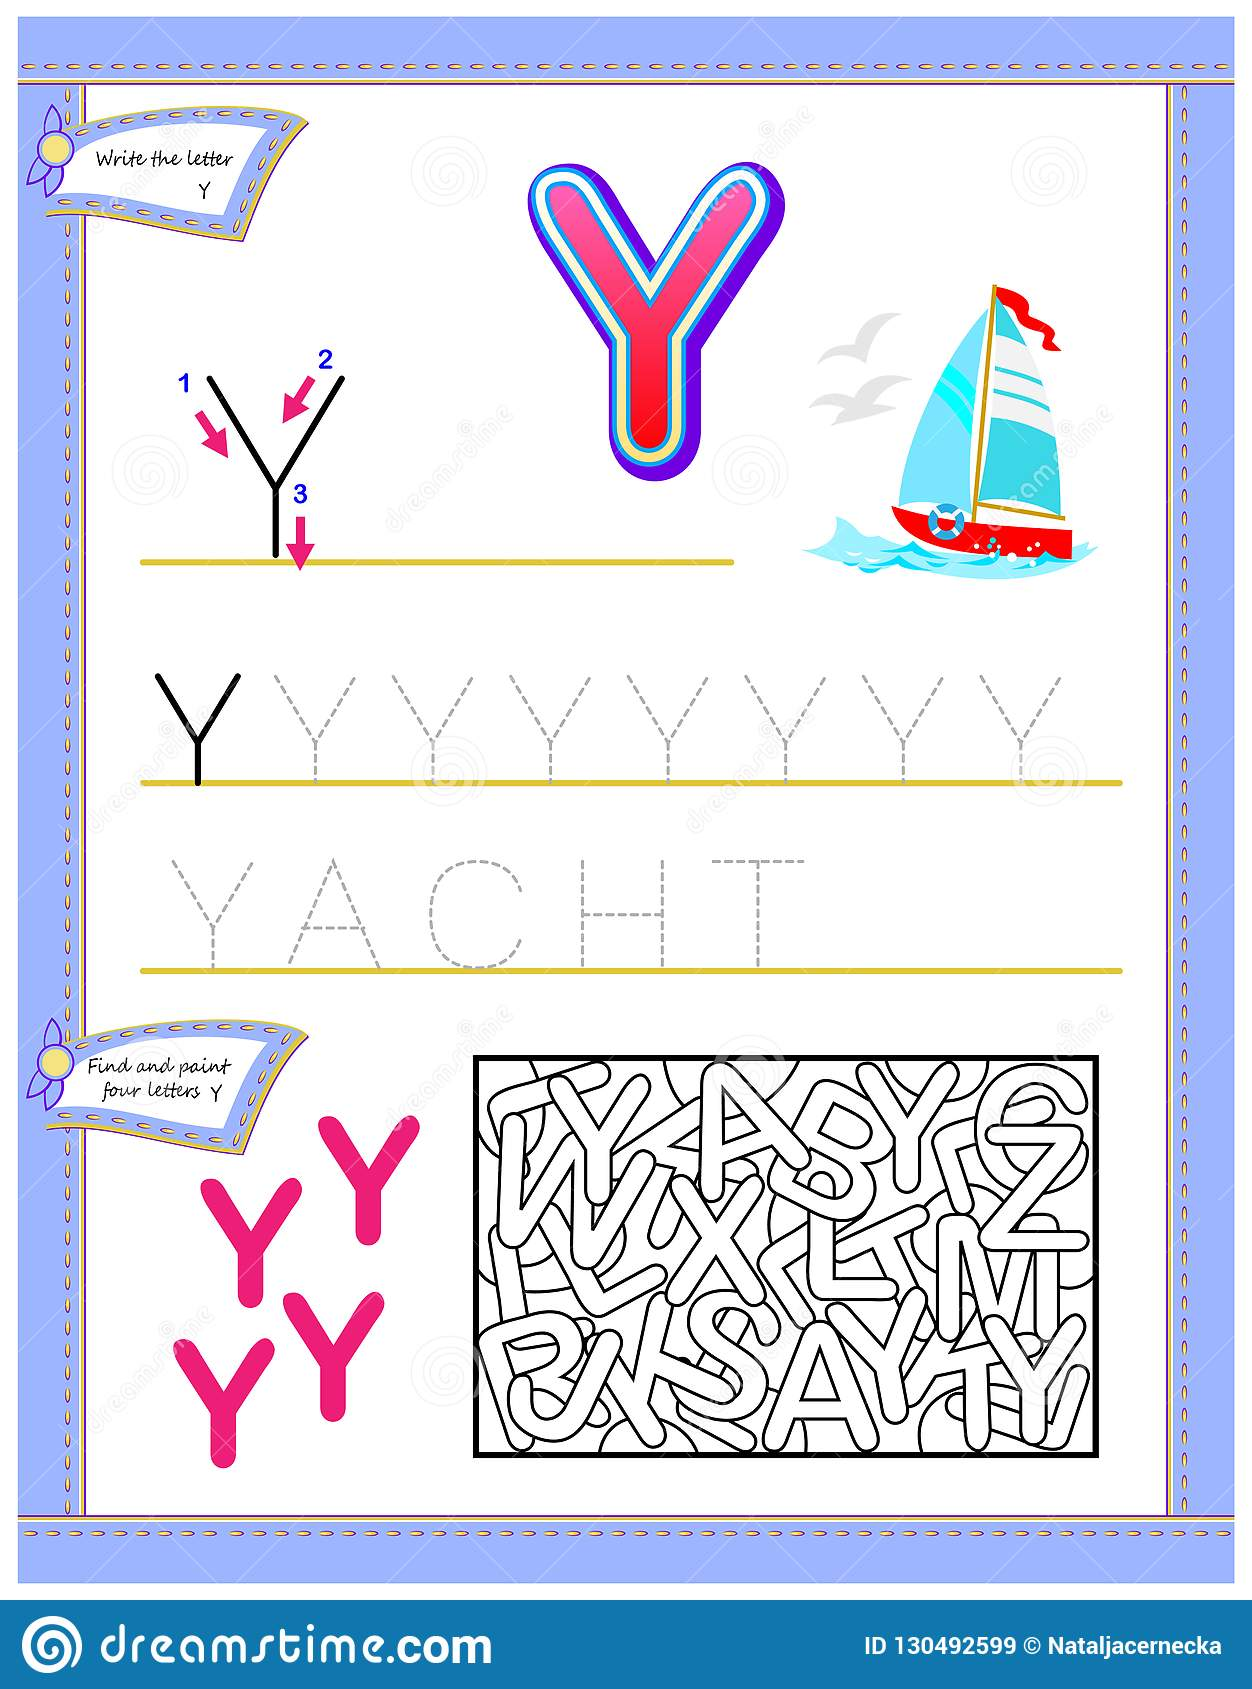 Worksheet For Kids With Letter Y For Study English